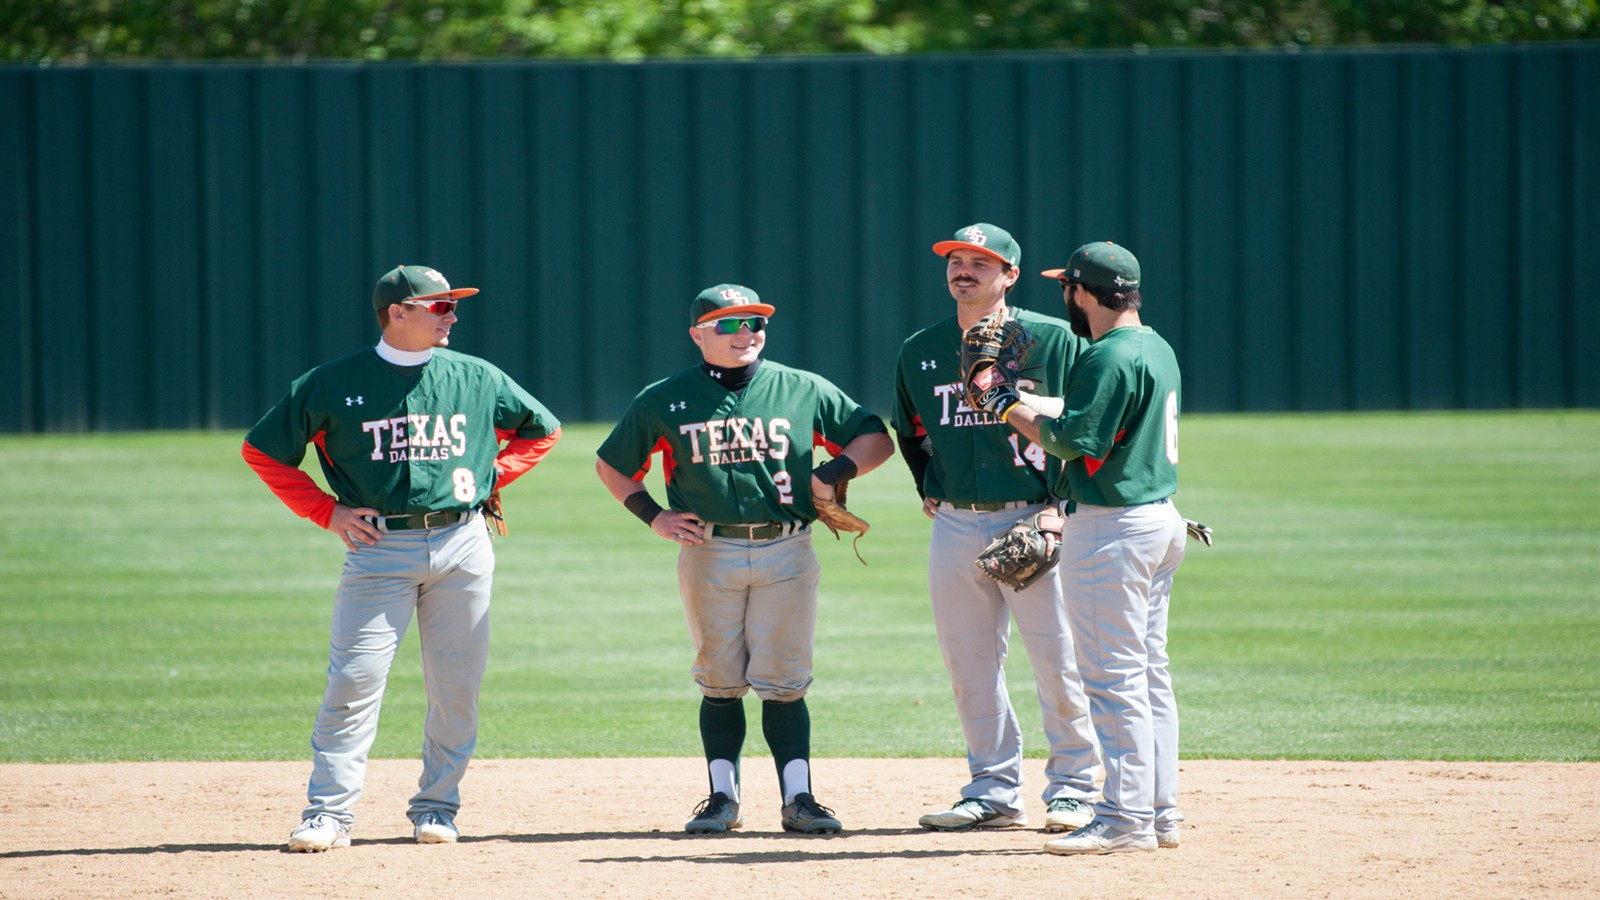 comets force final game, but fall to ut tyler in blue bracket finale